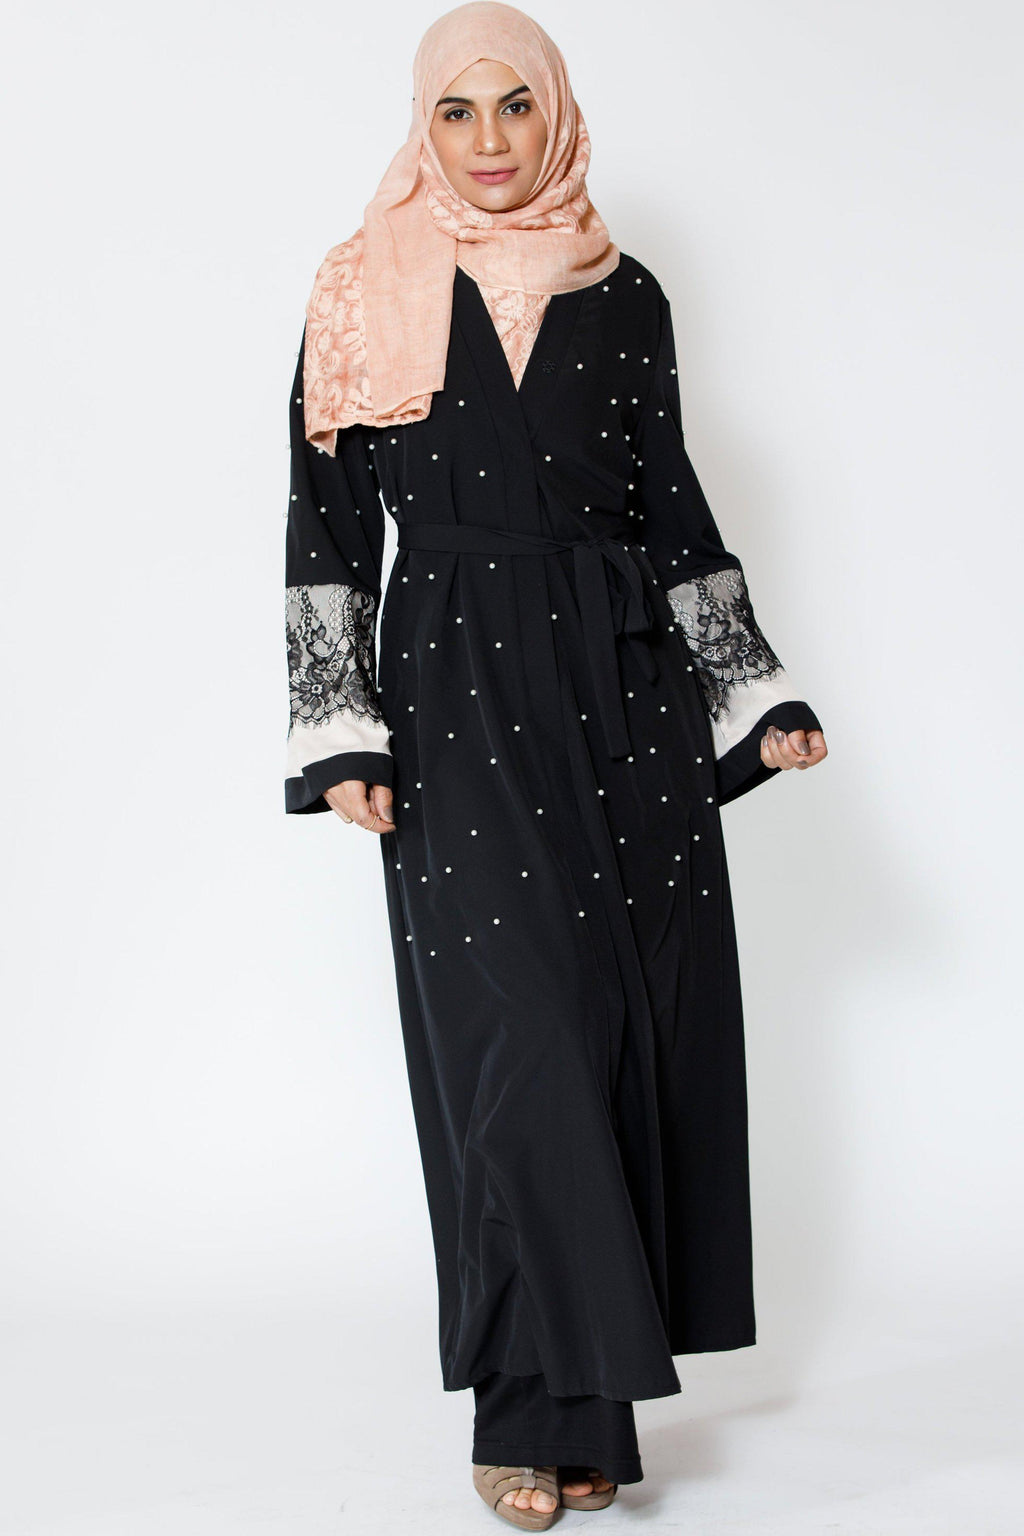 Black Pearl and Lace Open Front Abaya-Preorder-new cover up & open abaya-Urban Modesty Inc.